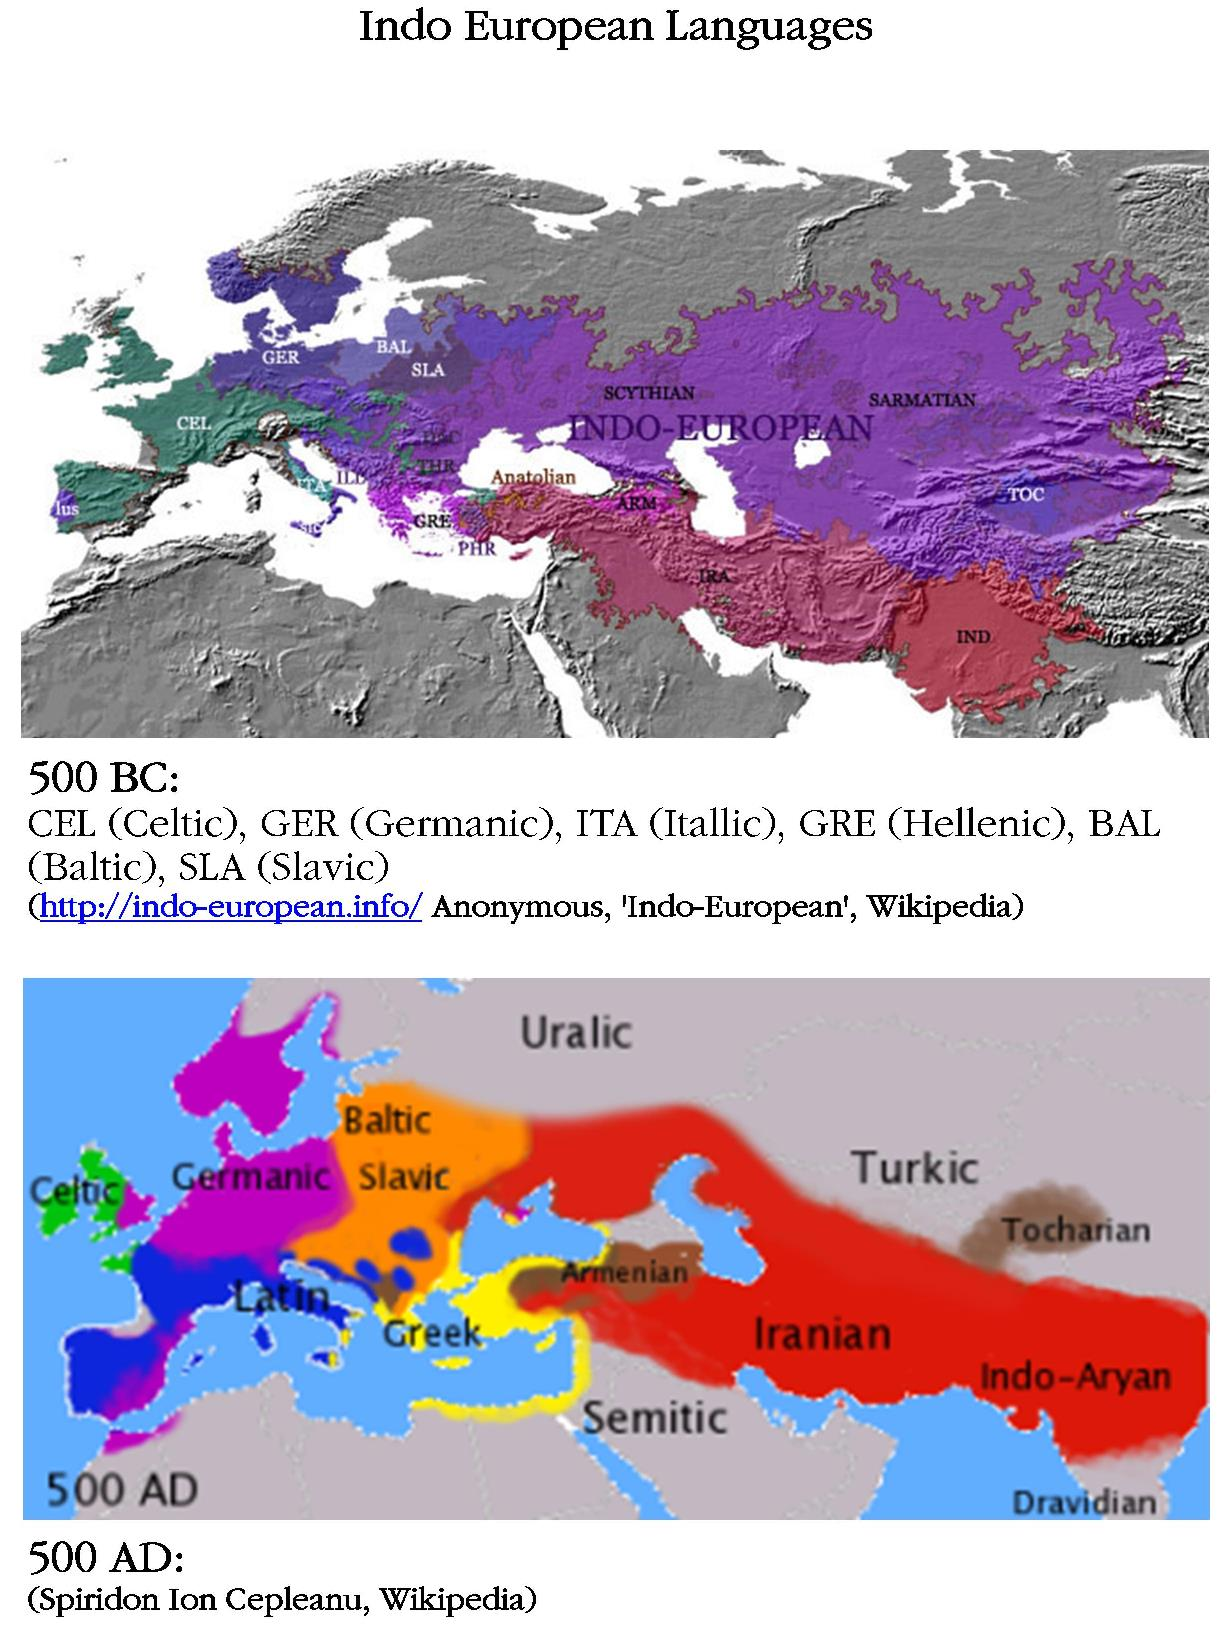 Indo European Languages map 500 BC 500 AD, Runes